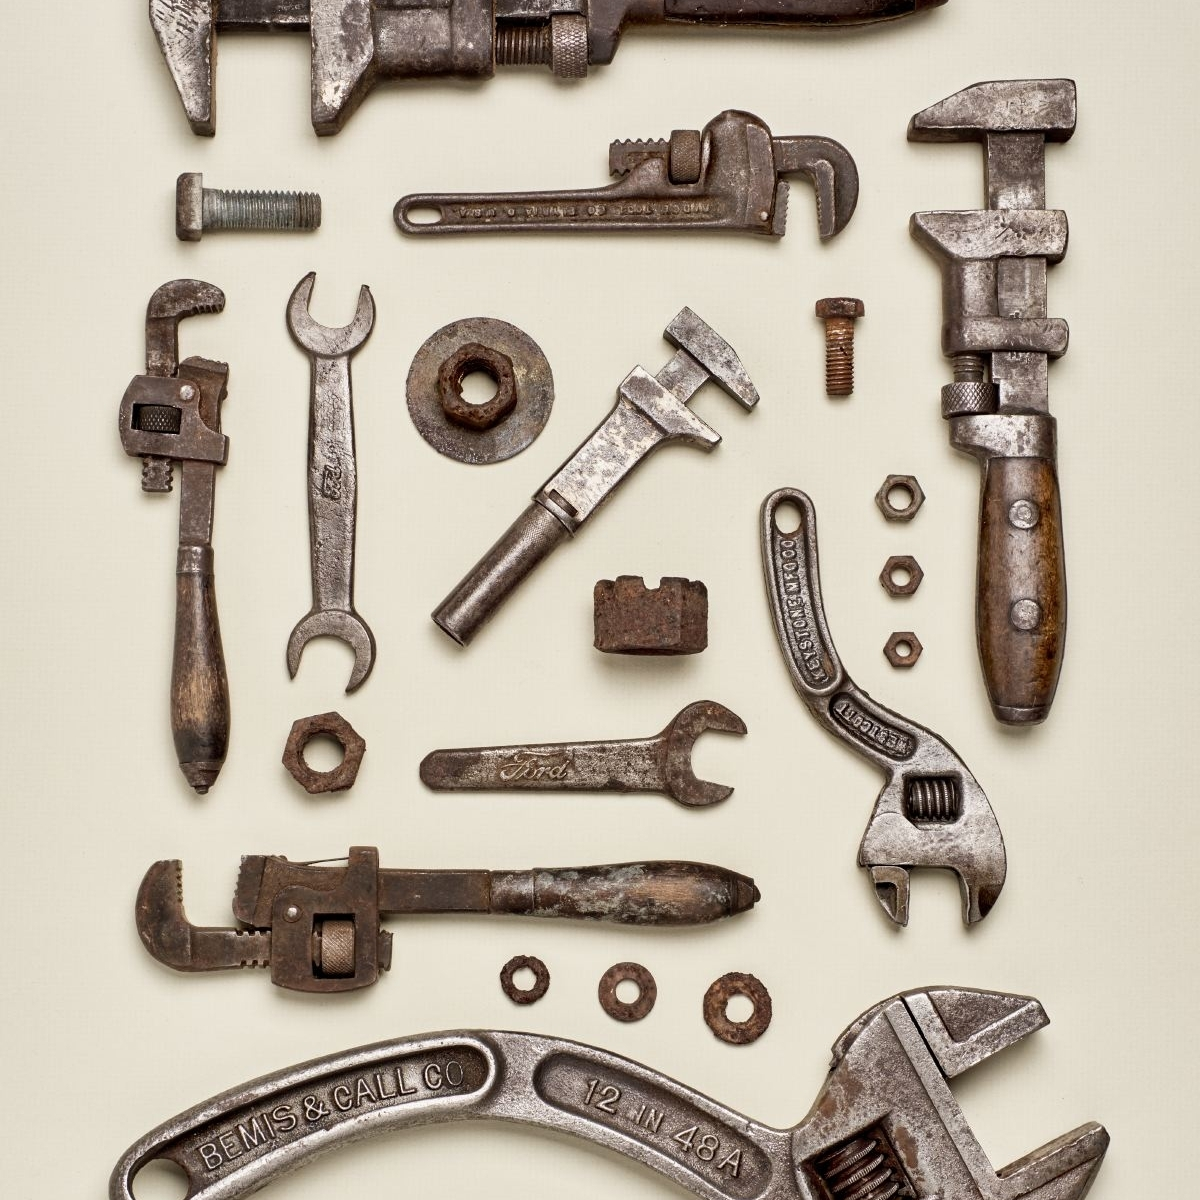 Tools #1: Wrenched